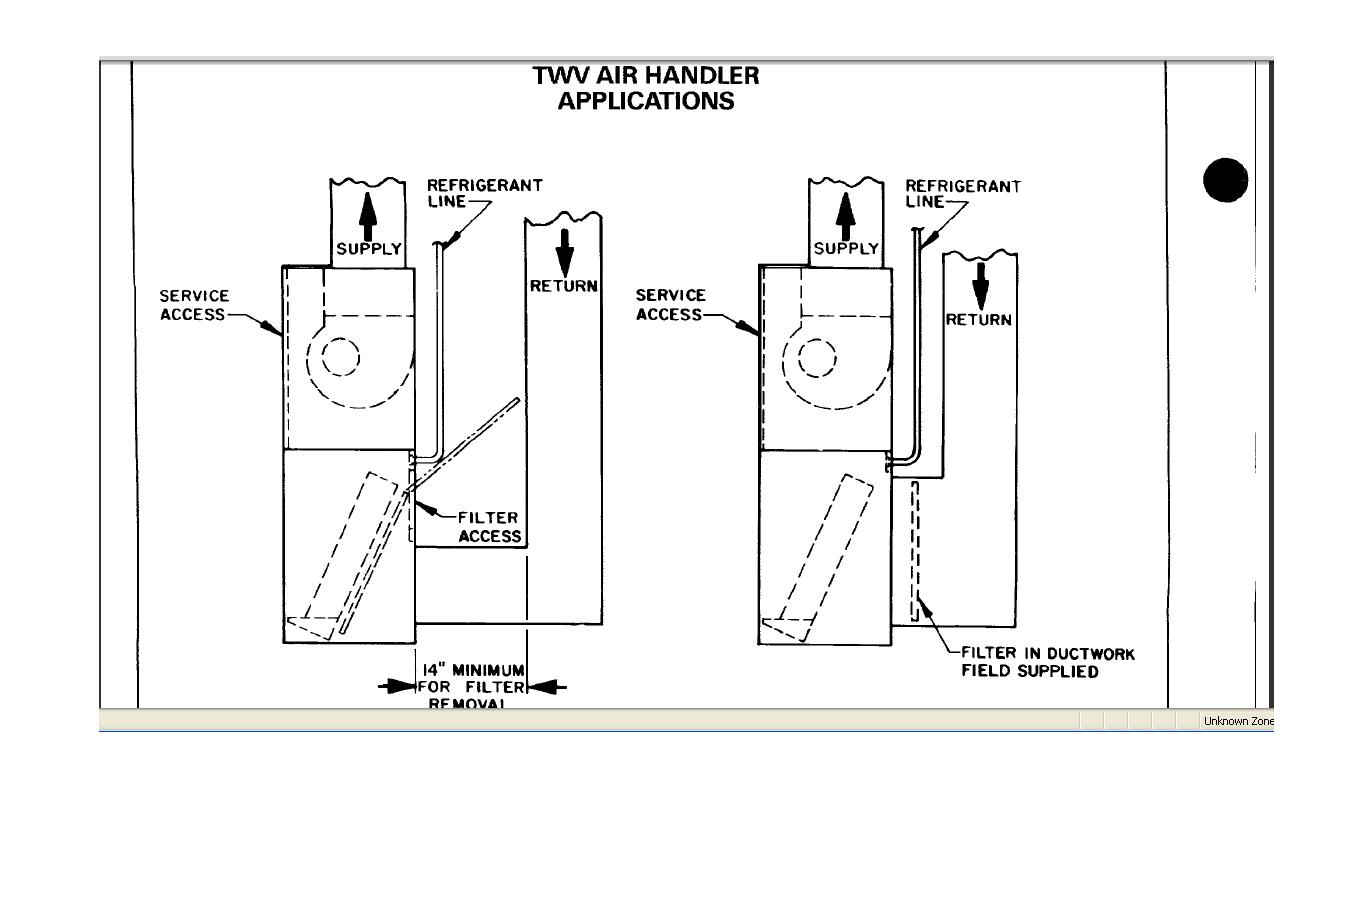 commercial air handler diagram diagram auto wiring diagram Wiring Harness Diagram Automotive Wiring Harness